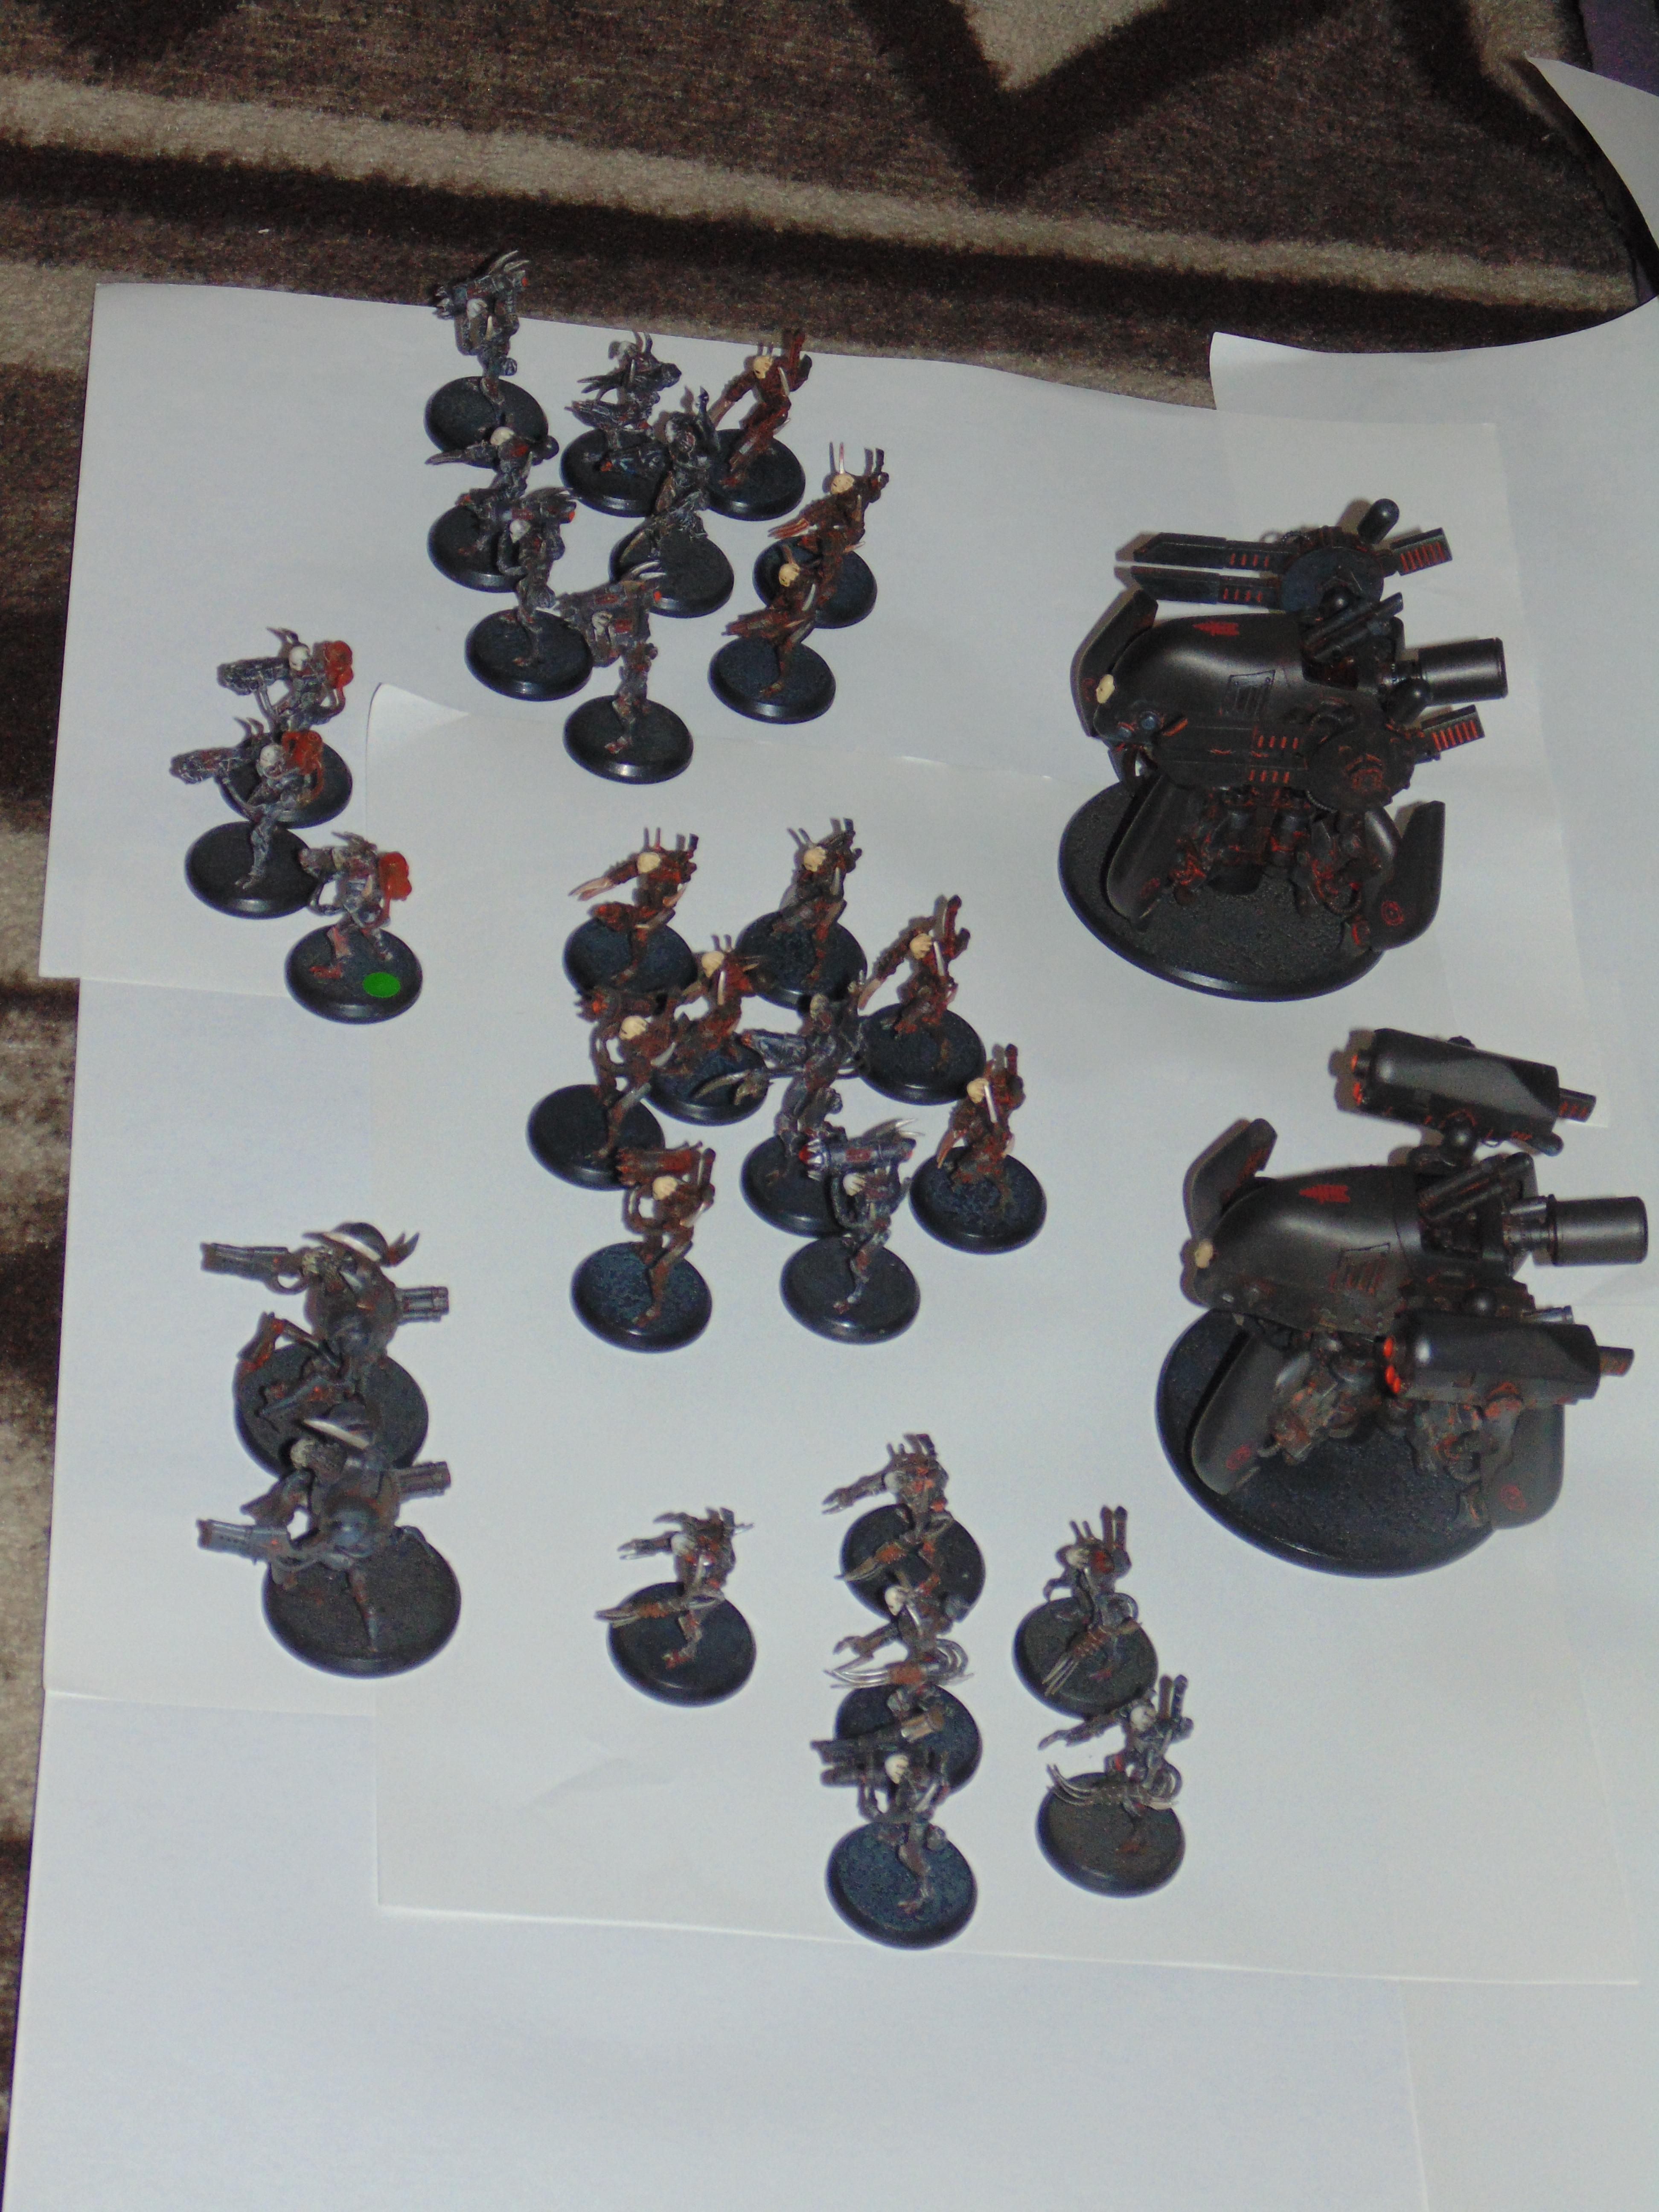 Army, AT-43, At43, Bane, Emi, Golem, Golgoth, Mech, Nano, Overseer, Poltergeist, Pre Painted, Rackham, Robot, Storm, Succubus, Terraner, Therian, Therians, Wraith